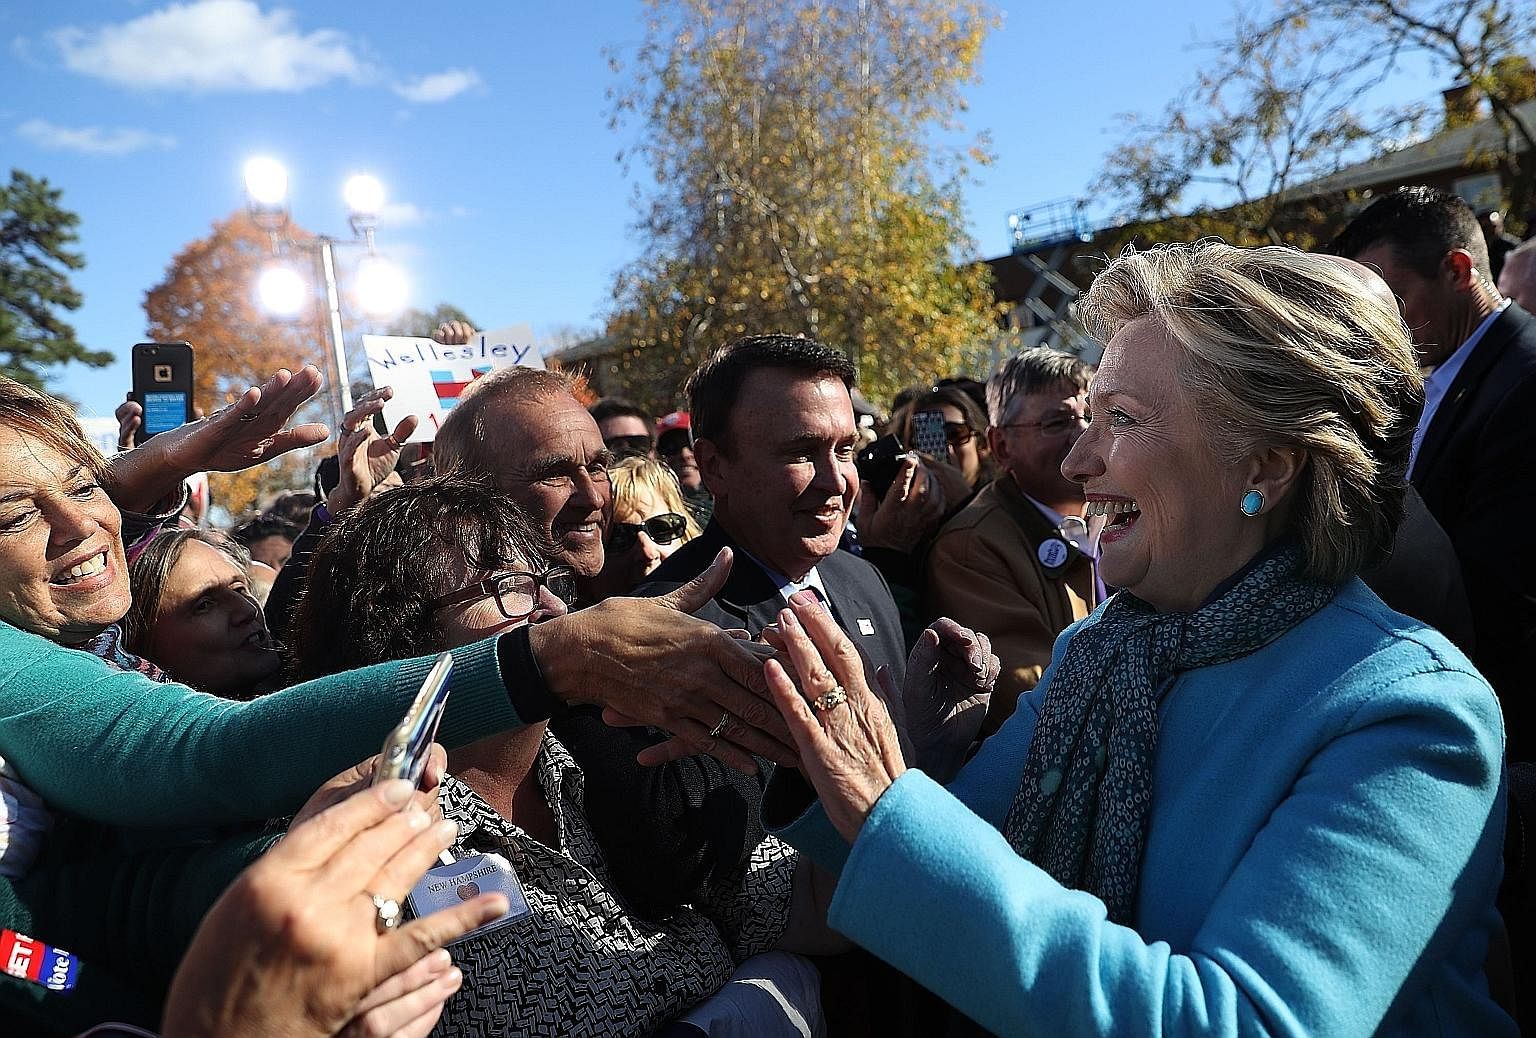 Mrs Clinton on the campaign trail. An experienced political negotiator and former chief diplomat, she understands that hypocrisy and two-facedness, when prudently harnessed to advance negotiations or avert conflicts, are a public good and a political